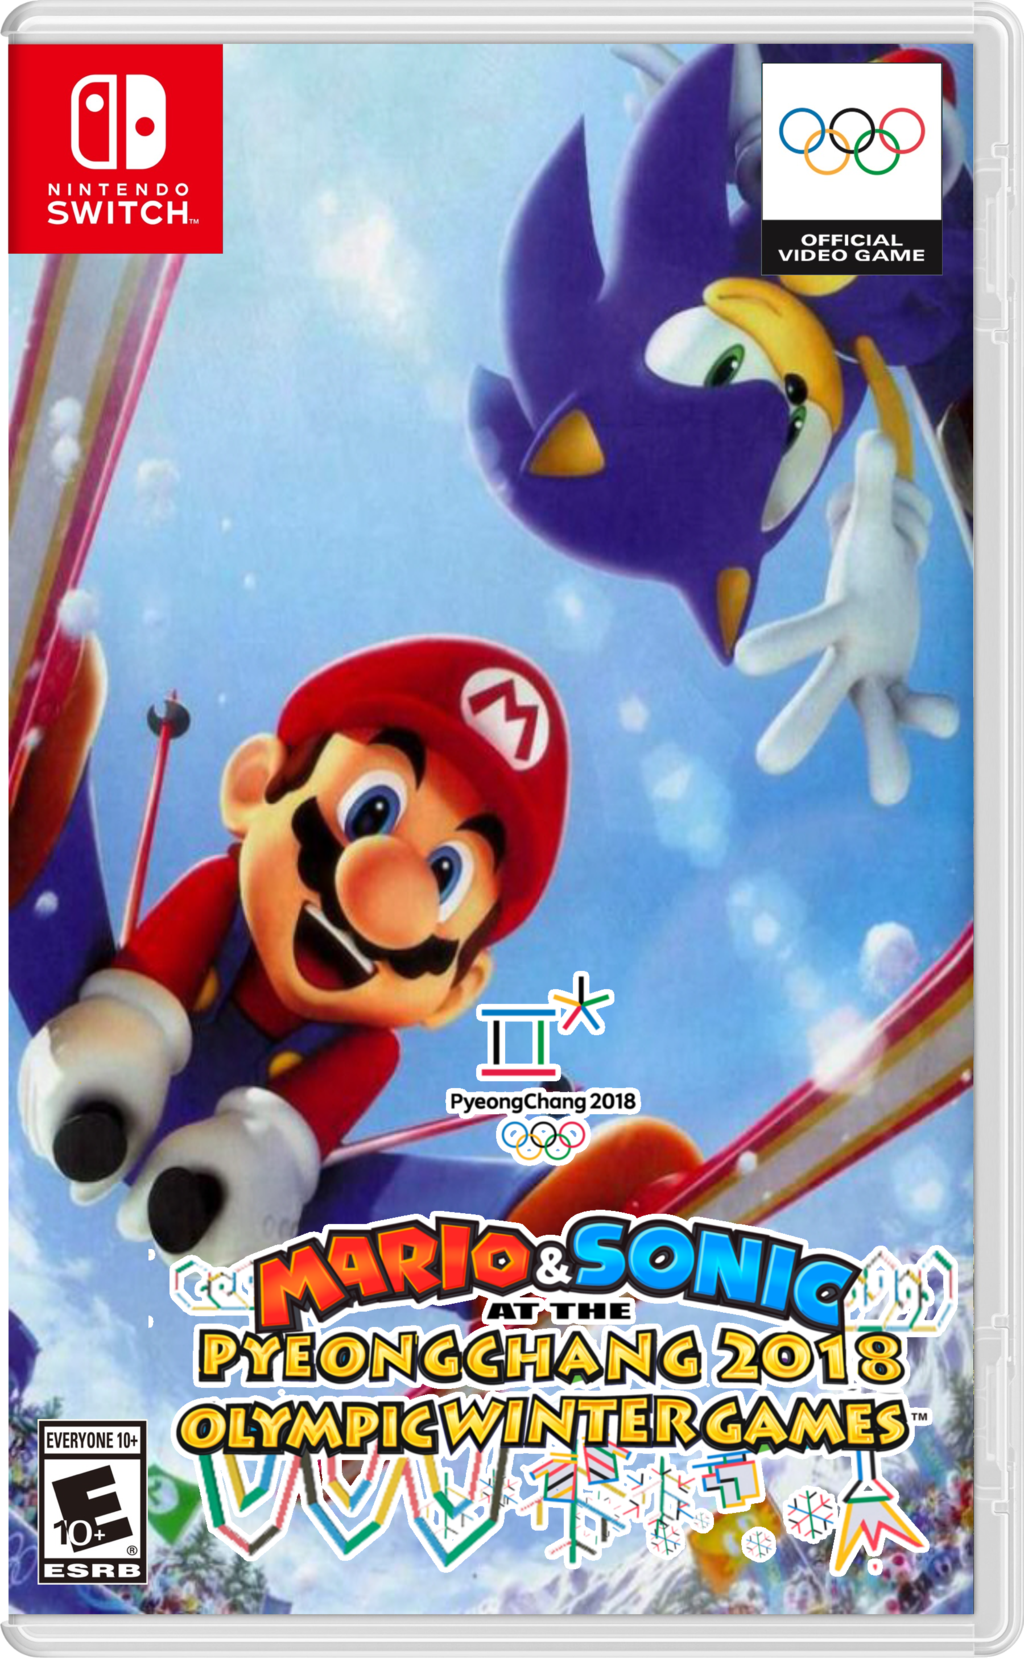 Mario And Sonic At The Pyeongchang 2020 Olympic Winter Games Release Date.Mario Sonic At The Pyeongchang 2018 Olympic Winter Games